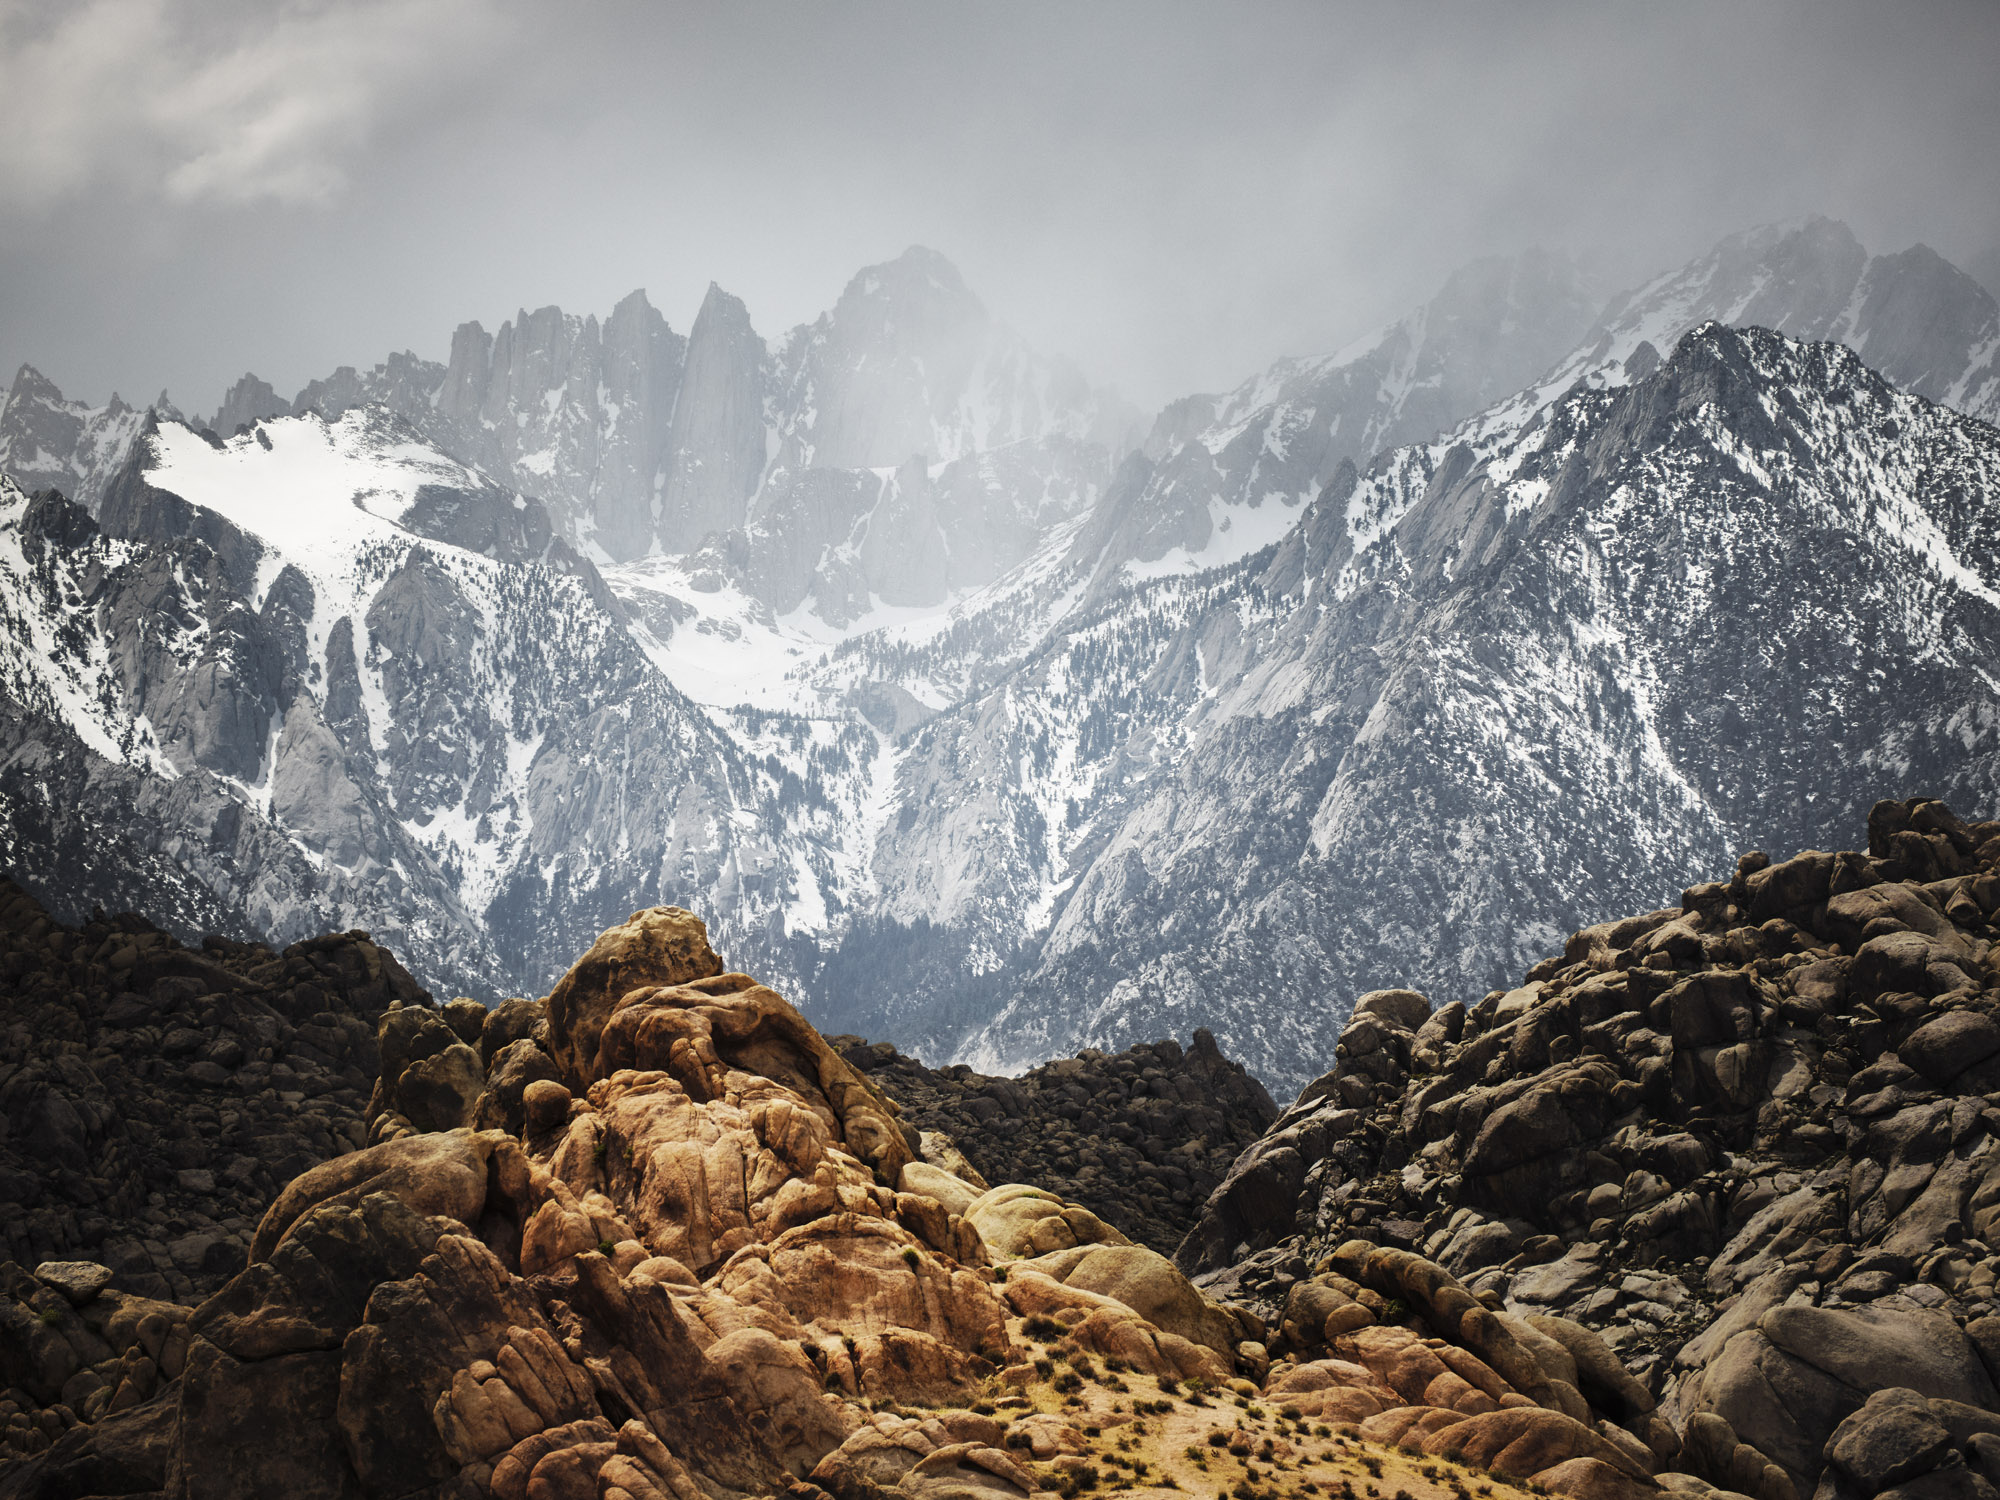 Alabama Hills, California: Spontaneous trips within trips become entirely possible.